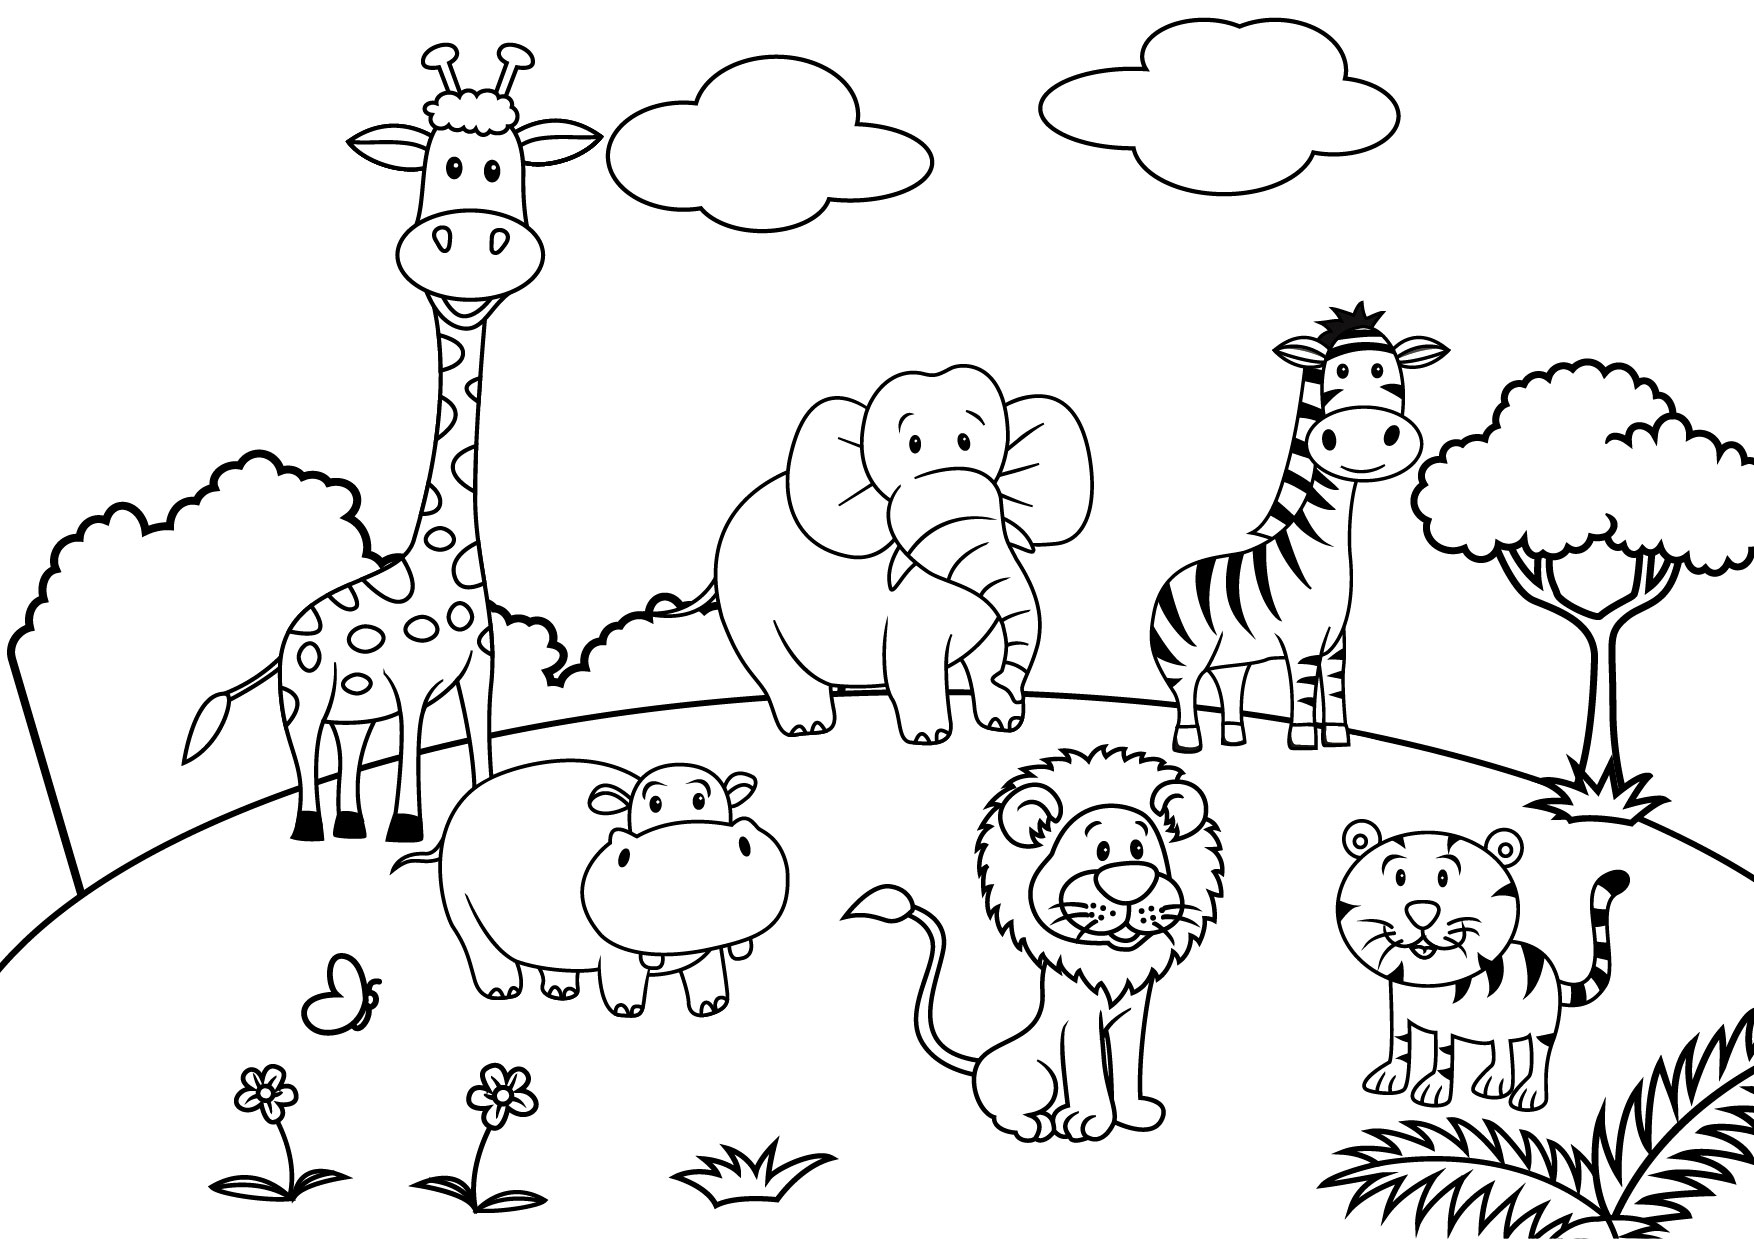 1754x1240 Drawing For Cover Page With Scenery How To Draw Scenery For Kids